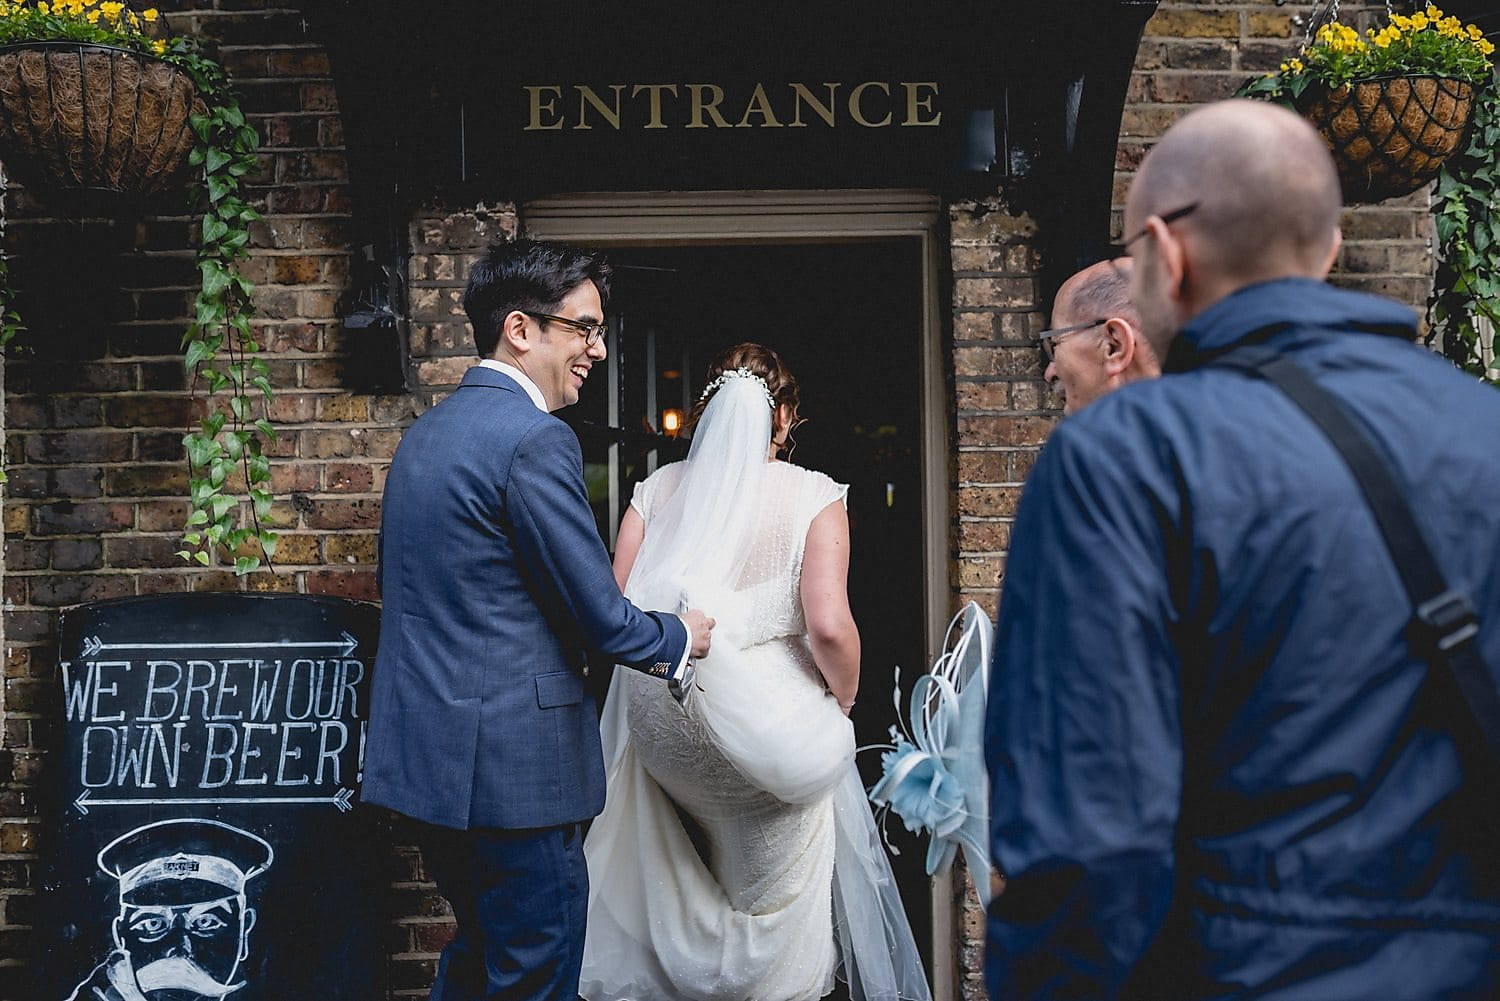 Groom holds up his bride's dress as she enters the pub